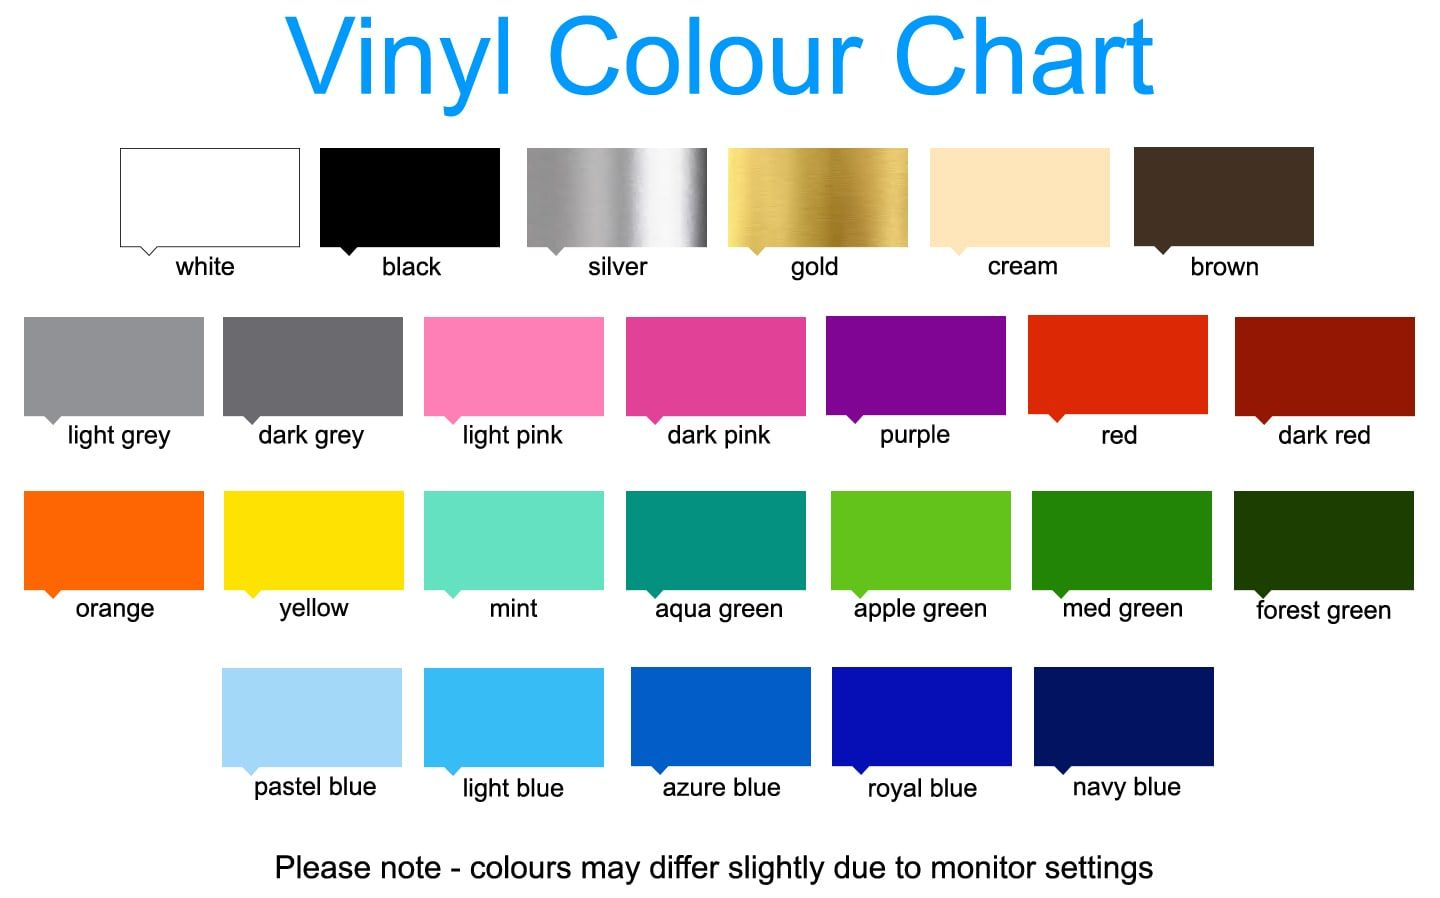 Colour chart for vinyl stickers